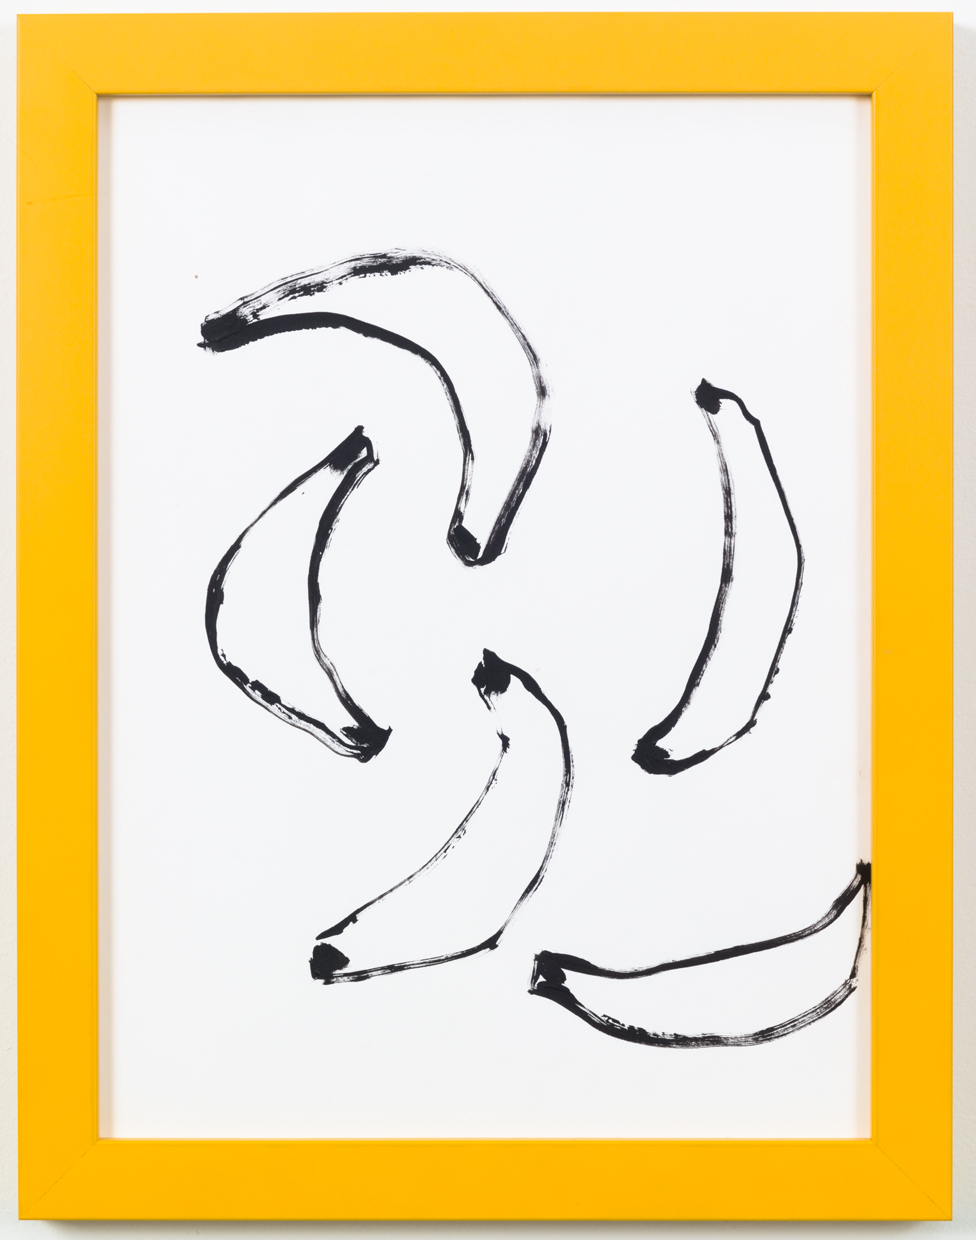 Bananas  12 inches x 9 inches  Acrylic on Paper.  2014